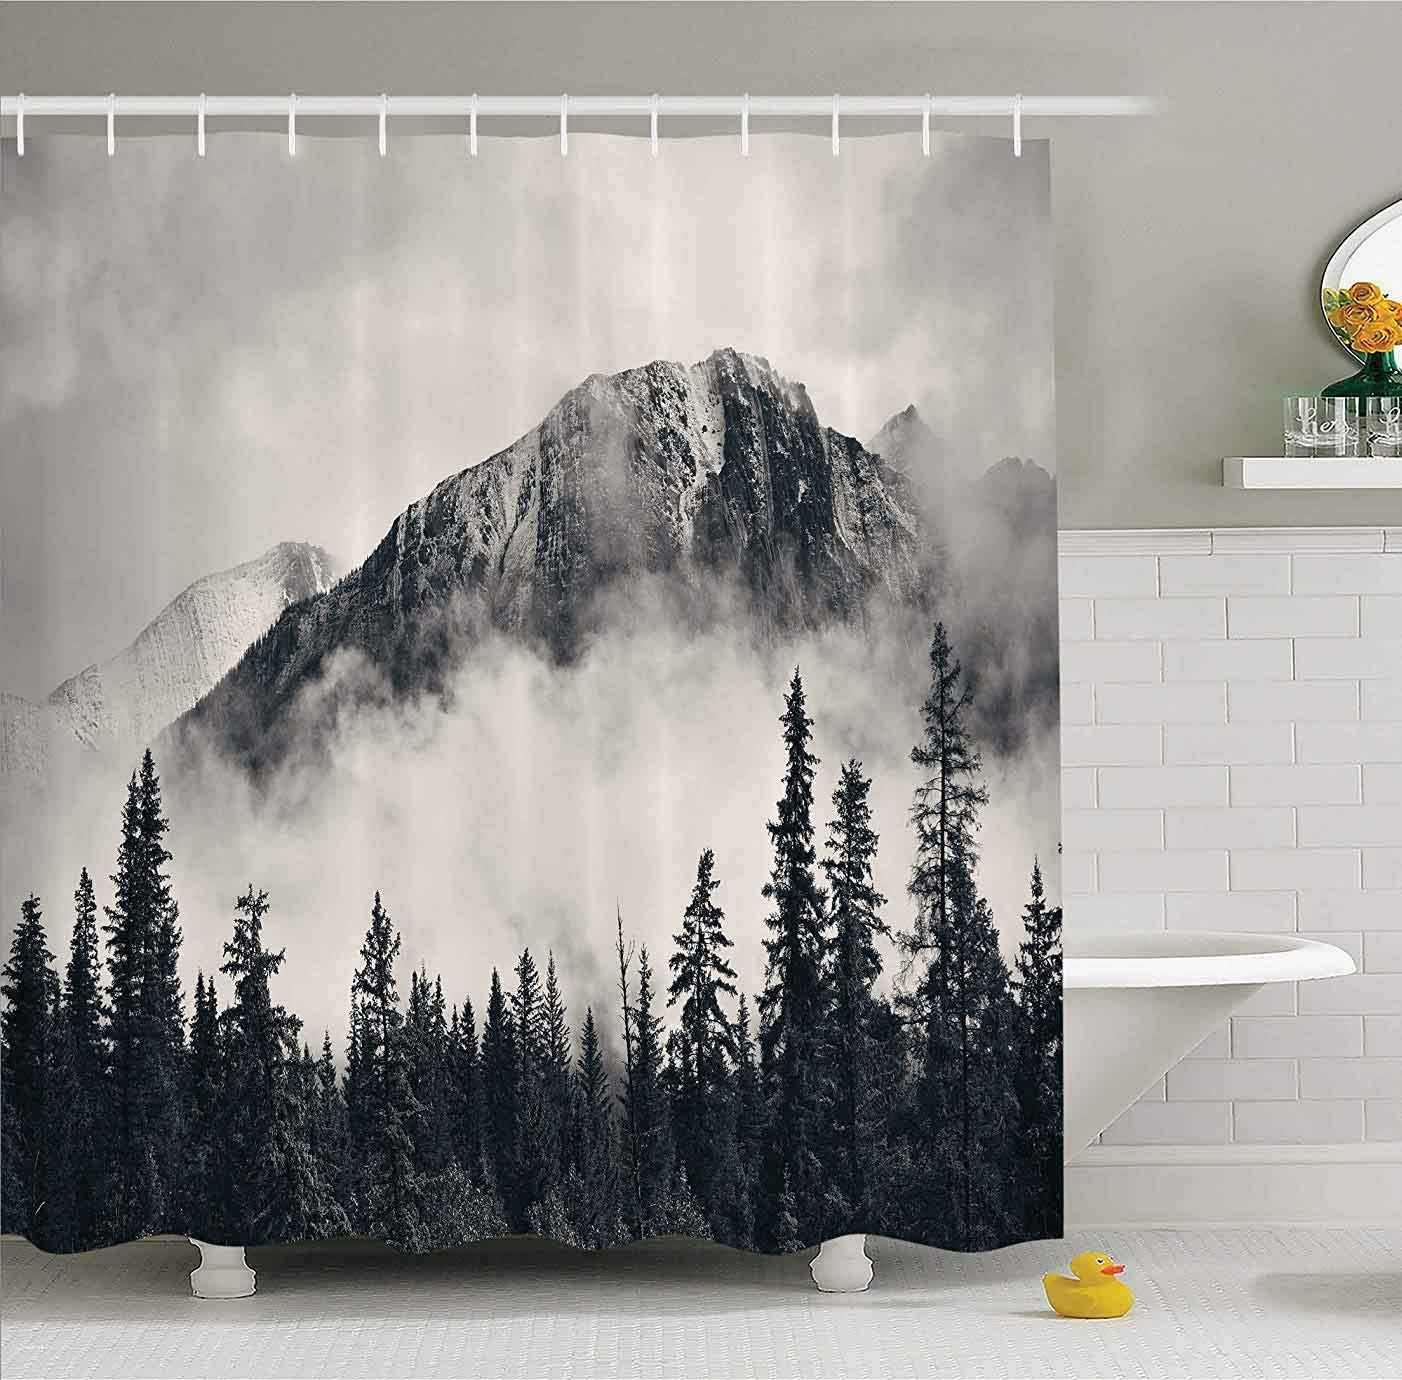 """Canadian Smoky Mountain Cliff Outdoor Idyllic Photo Art Shower Curtain No Liner, National Parks Home Decor Curtain, Waterproof Polyester Fabric Bathroom Shower Curtain with Hooks 72"""" x 72"""""""